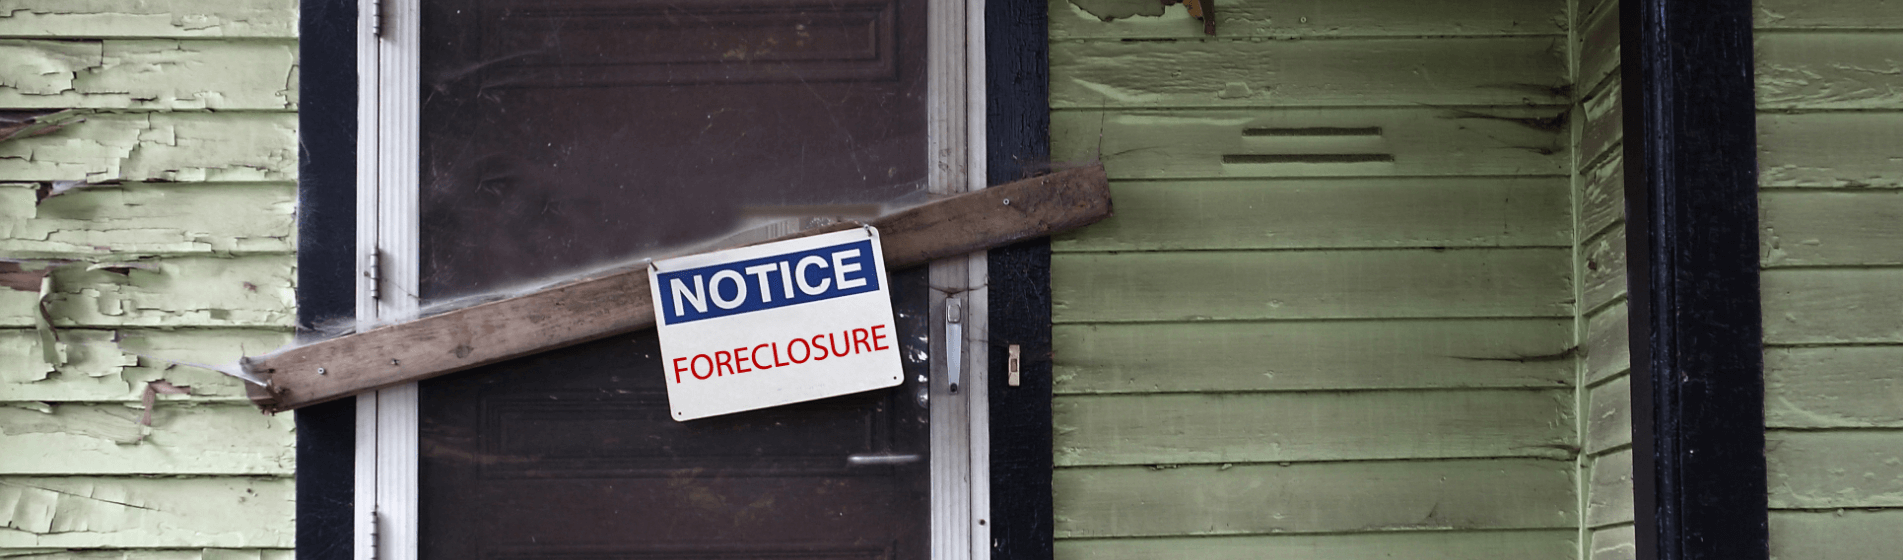 Backdoor expropriation: how to lose your home (and go to jail)